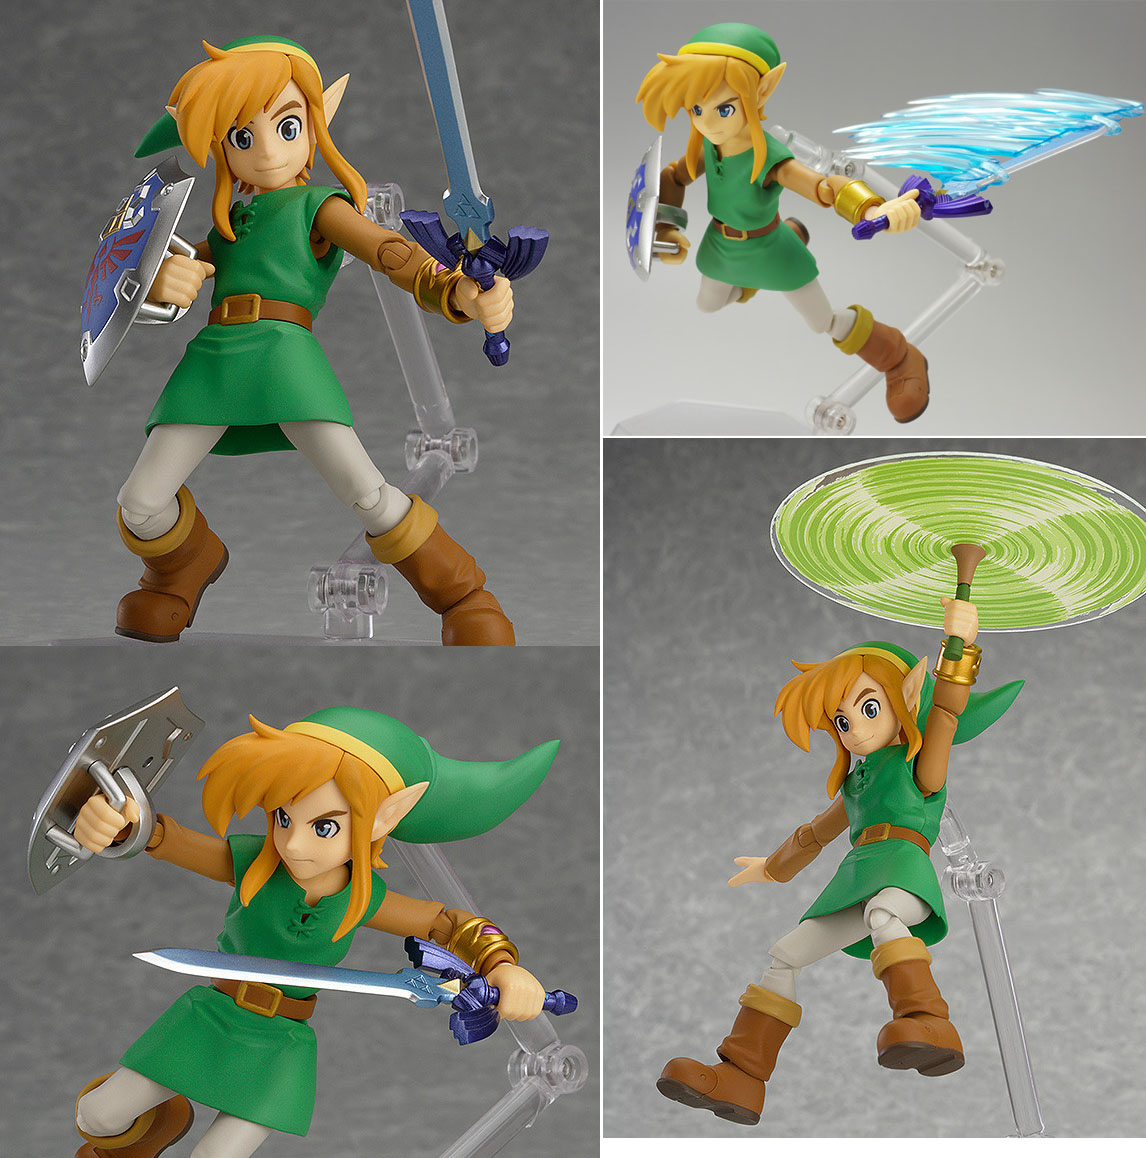 14cm The Legend of Zelda: A Link Between Worlds 2 figma EX-032 Link PVC Action Figure Collection Model Toy wells h g the war of the worlds война миров роман на англ яз